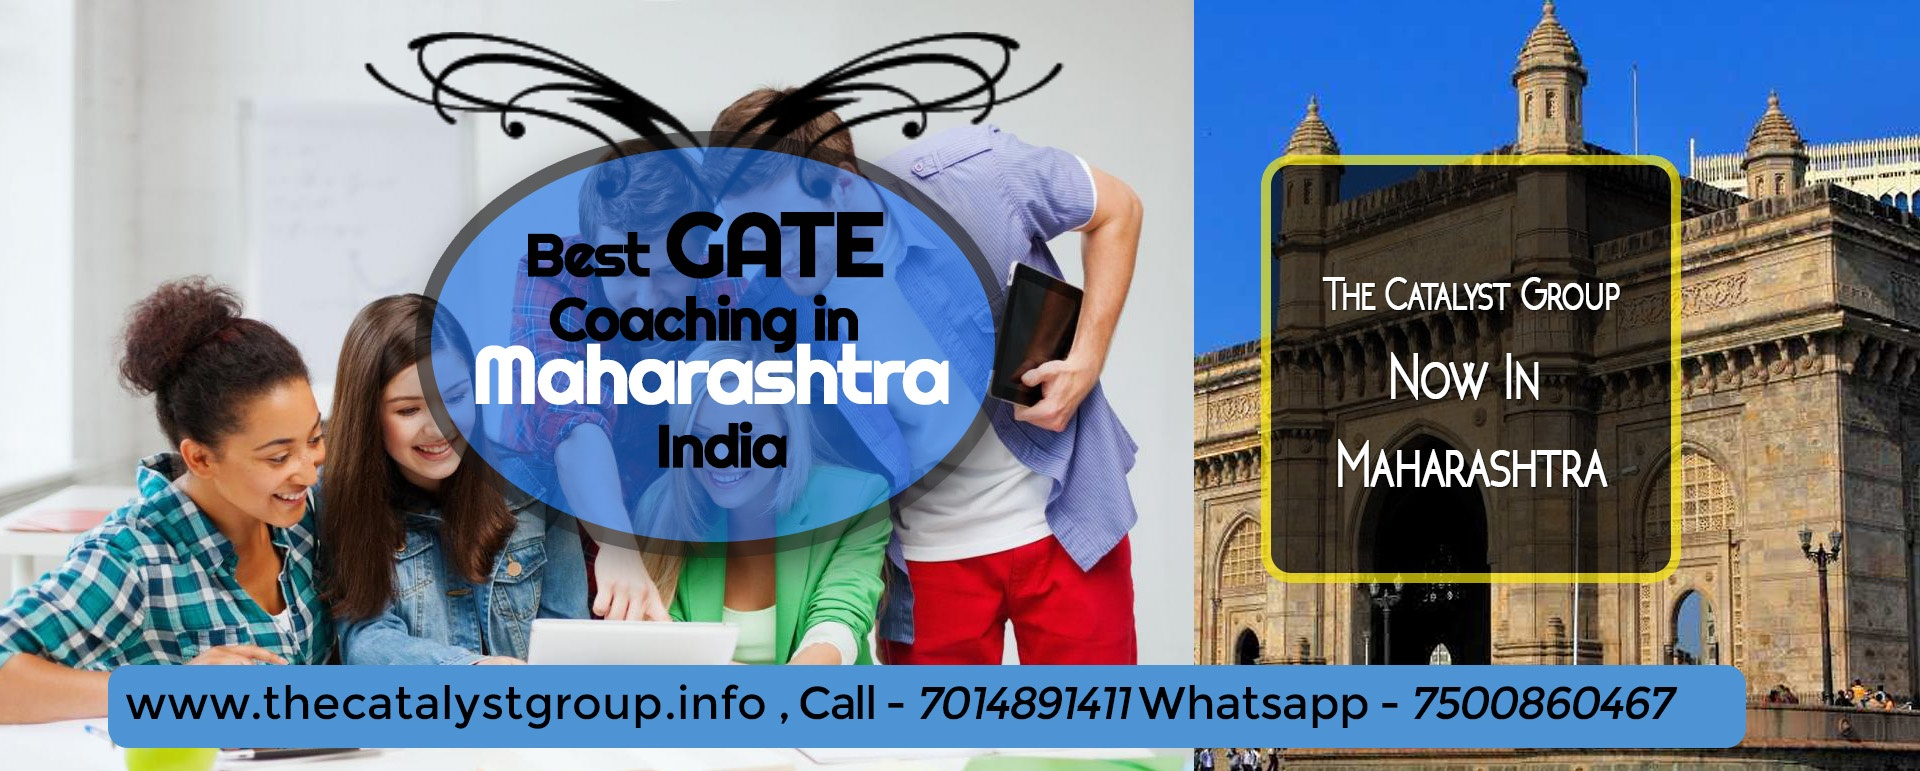 best-gate-coaching-in-maharashtra